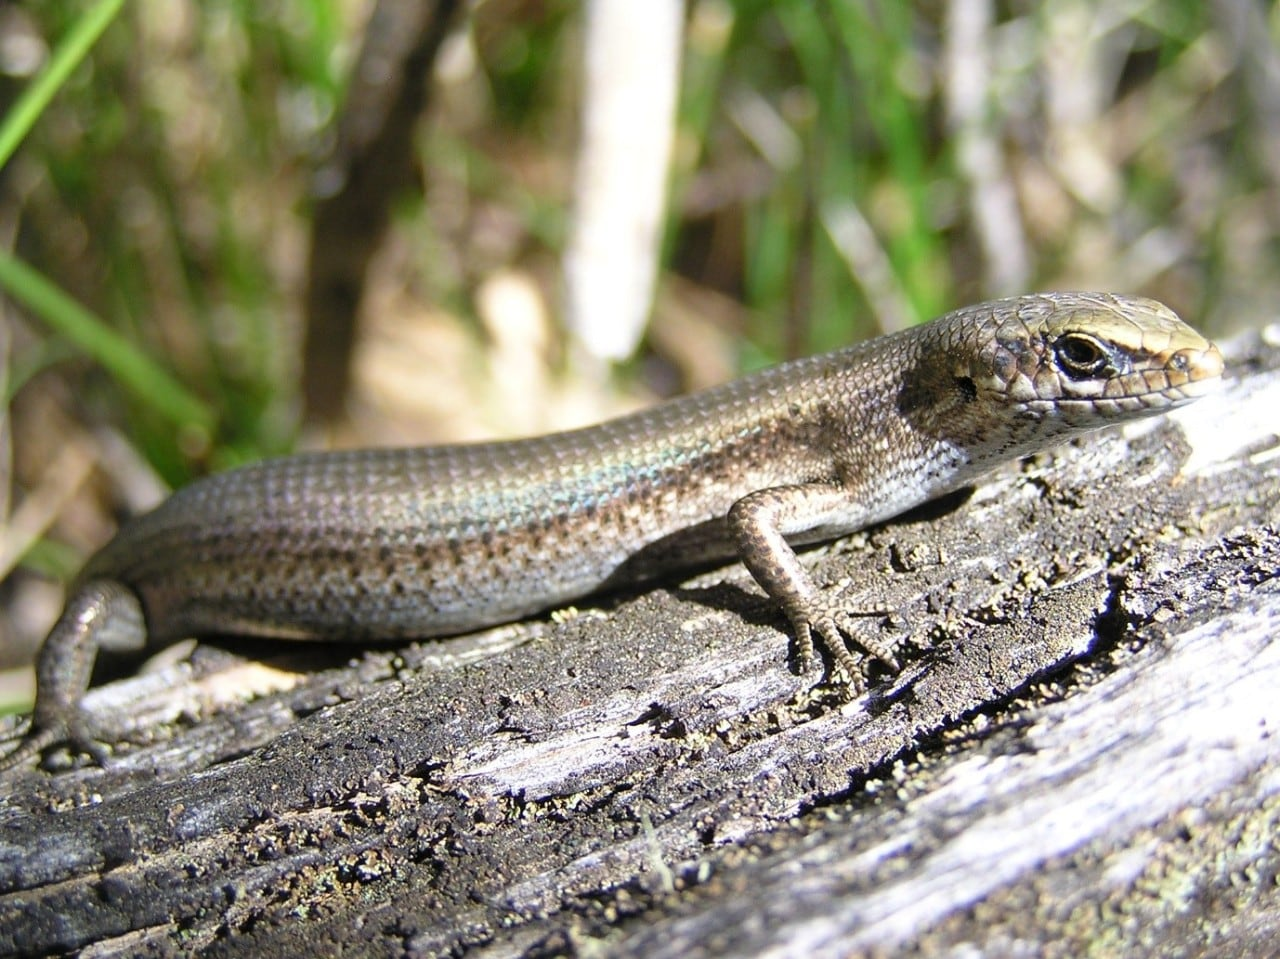 ,Southern grass skink (Pseudemoia entrecasteauxii). Photo: Jacquie Herbert